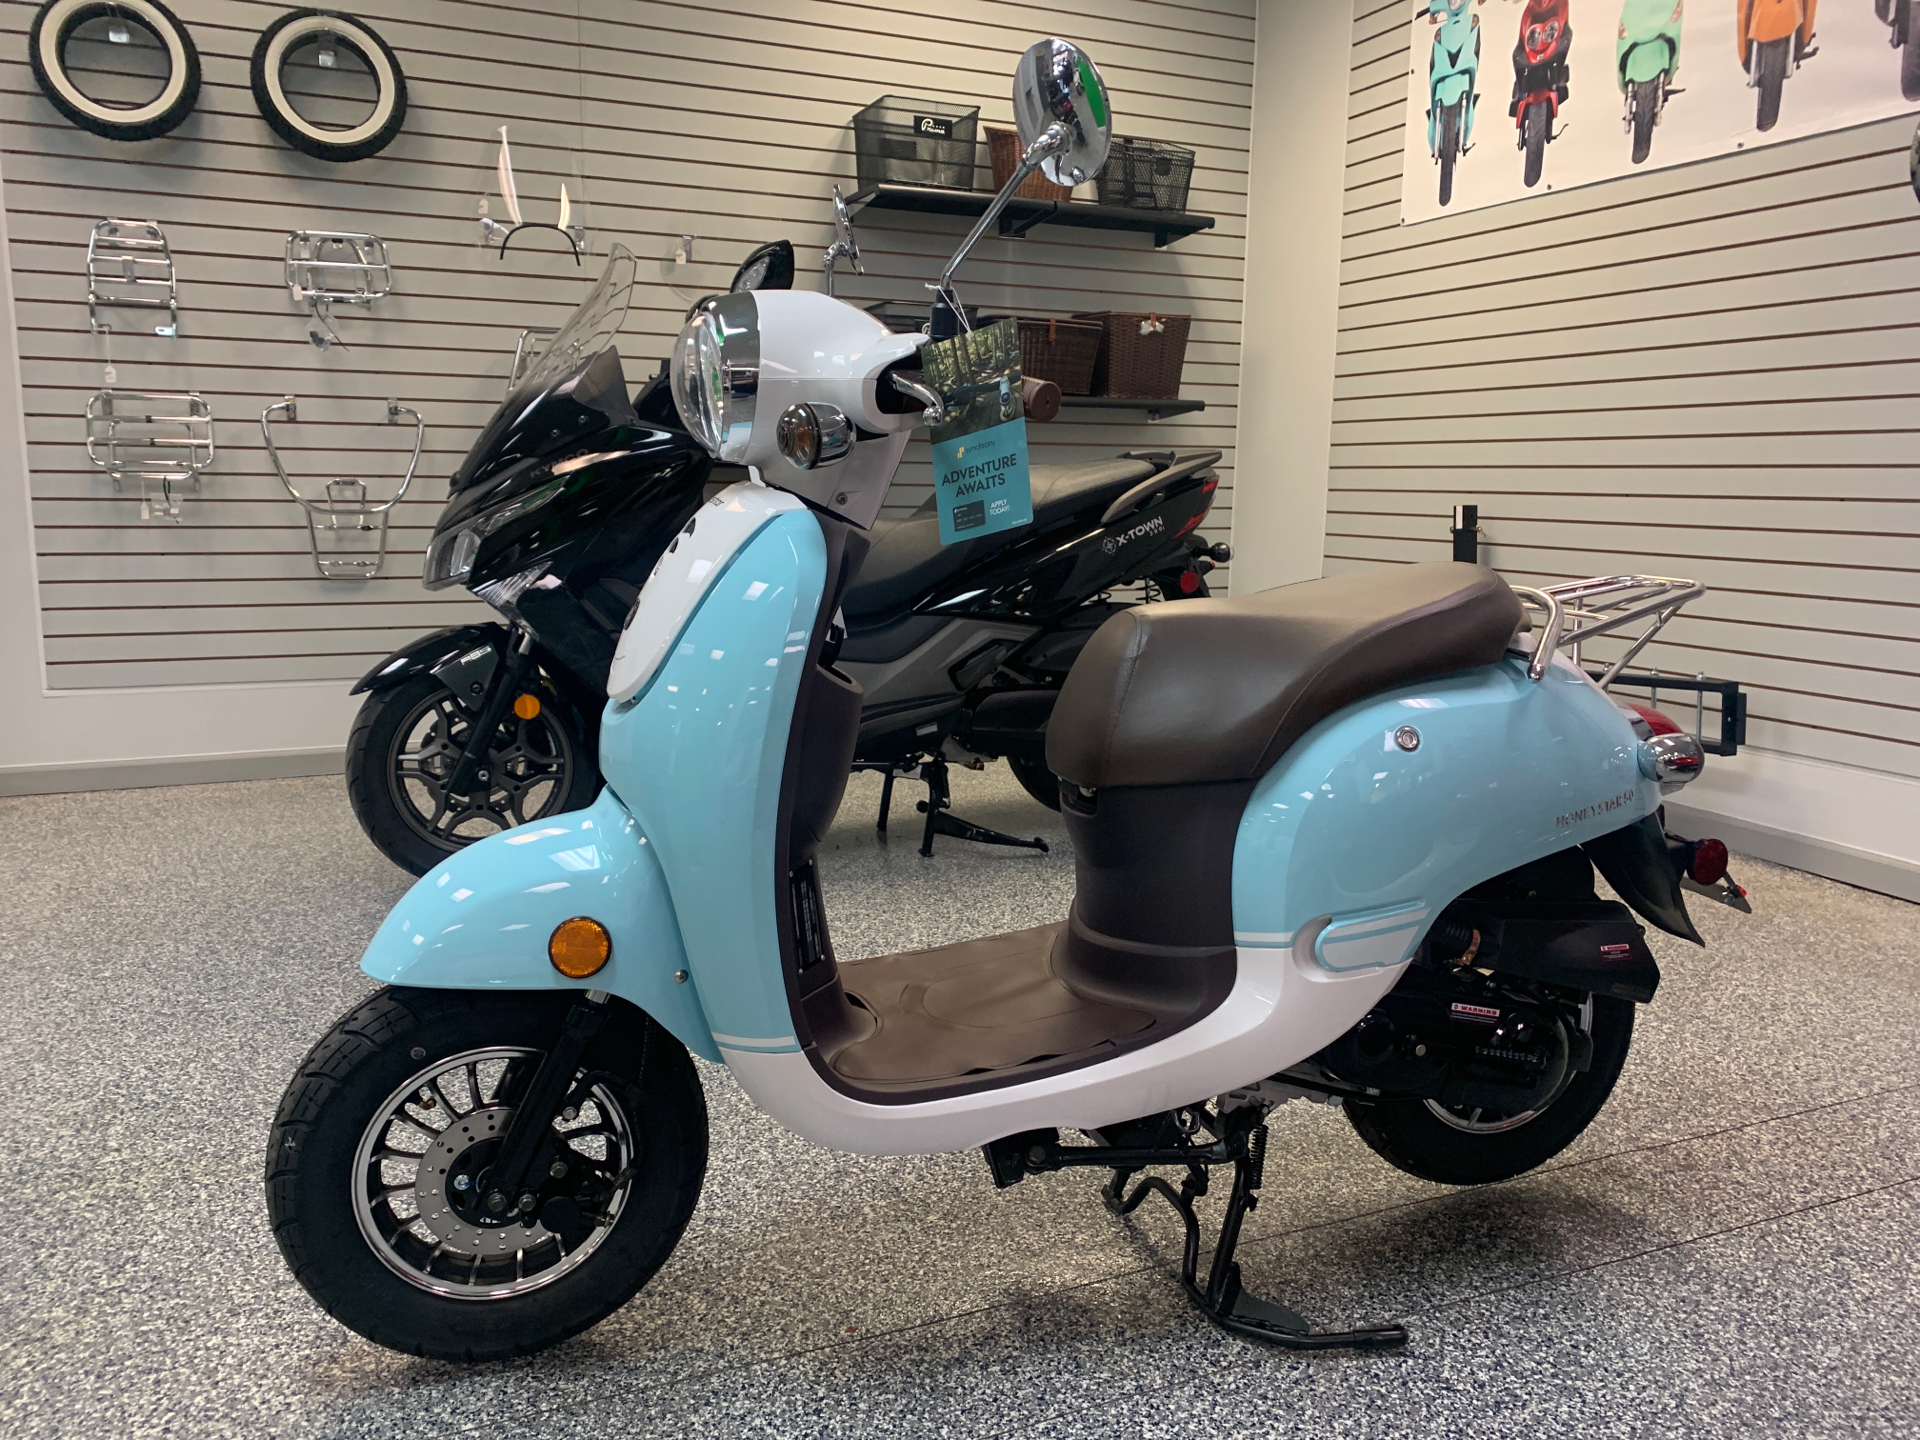 2021 SCOOTSTAR Honeystar 50 in Pensacola, Florida